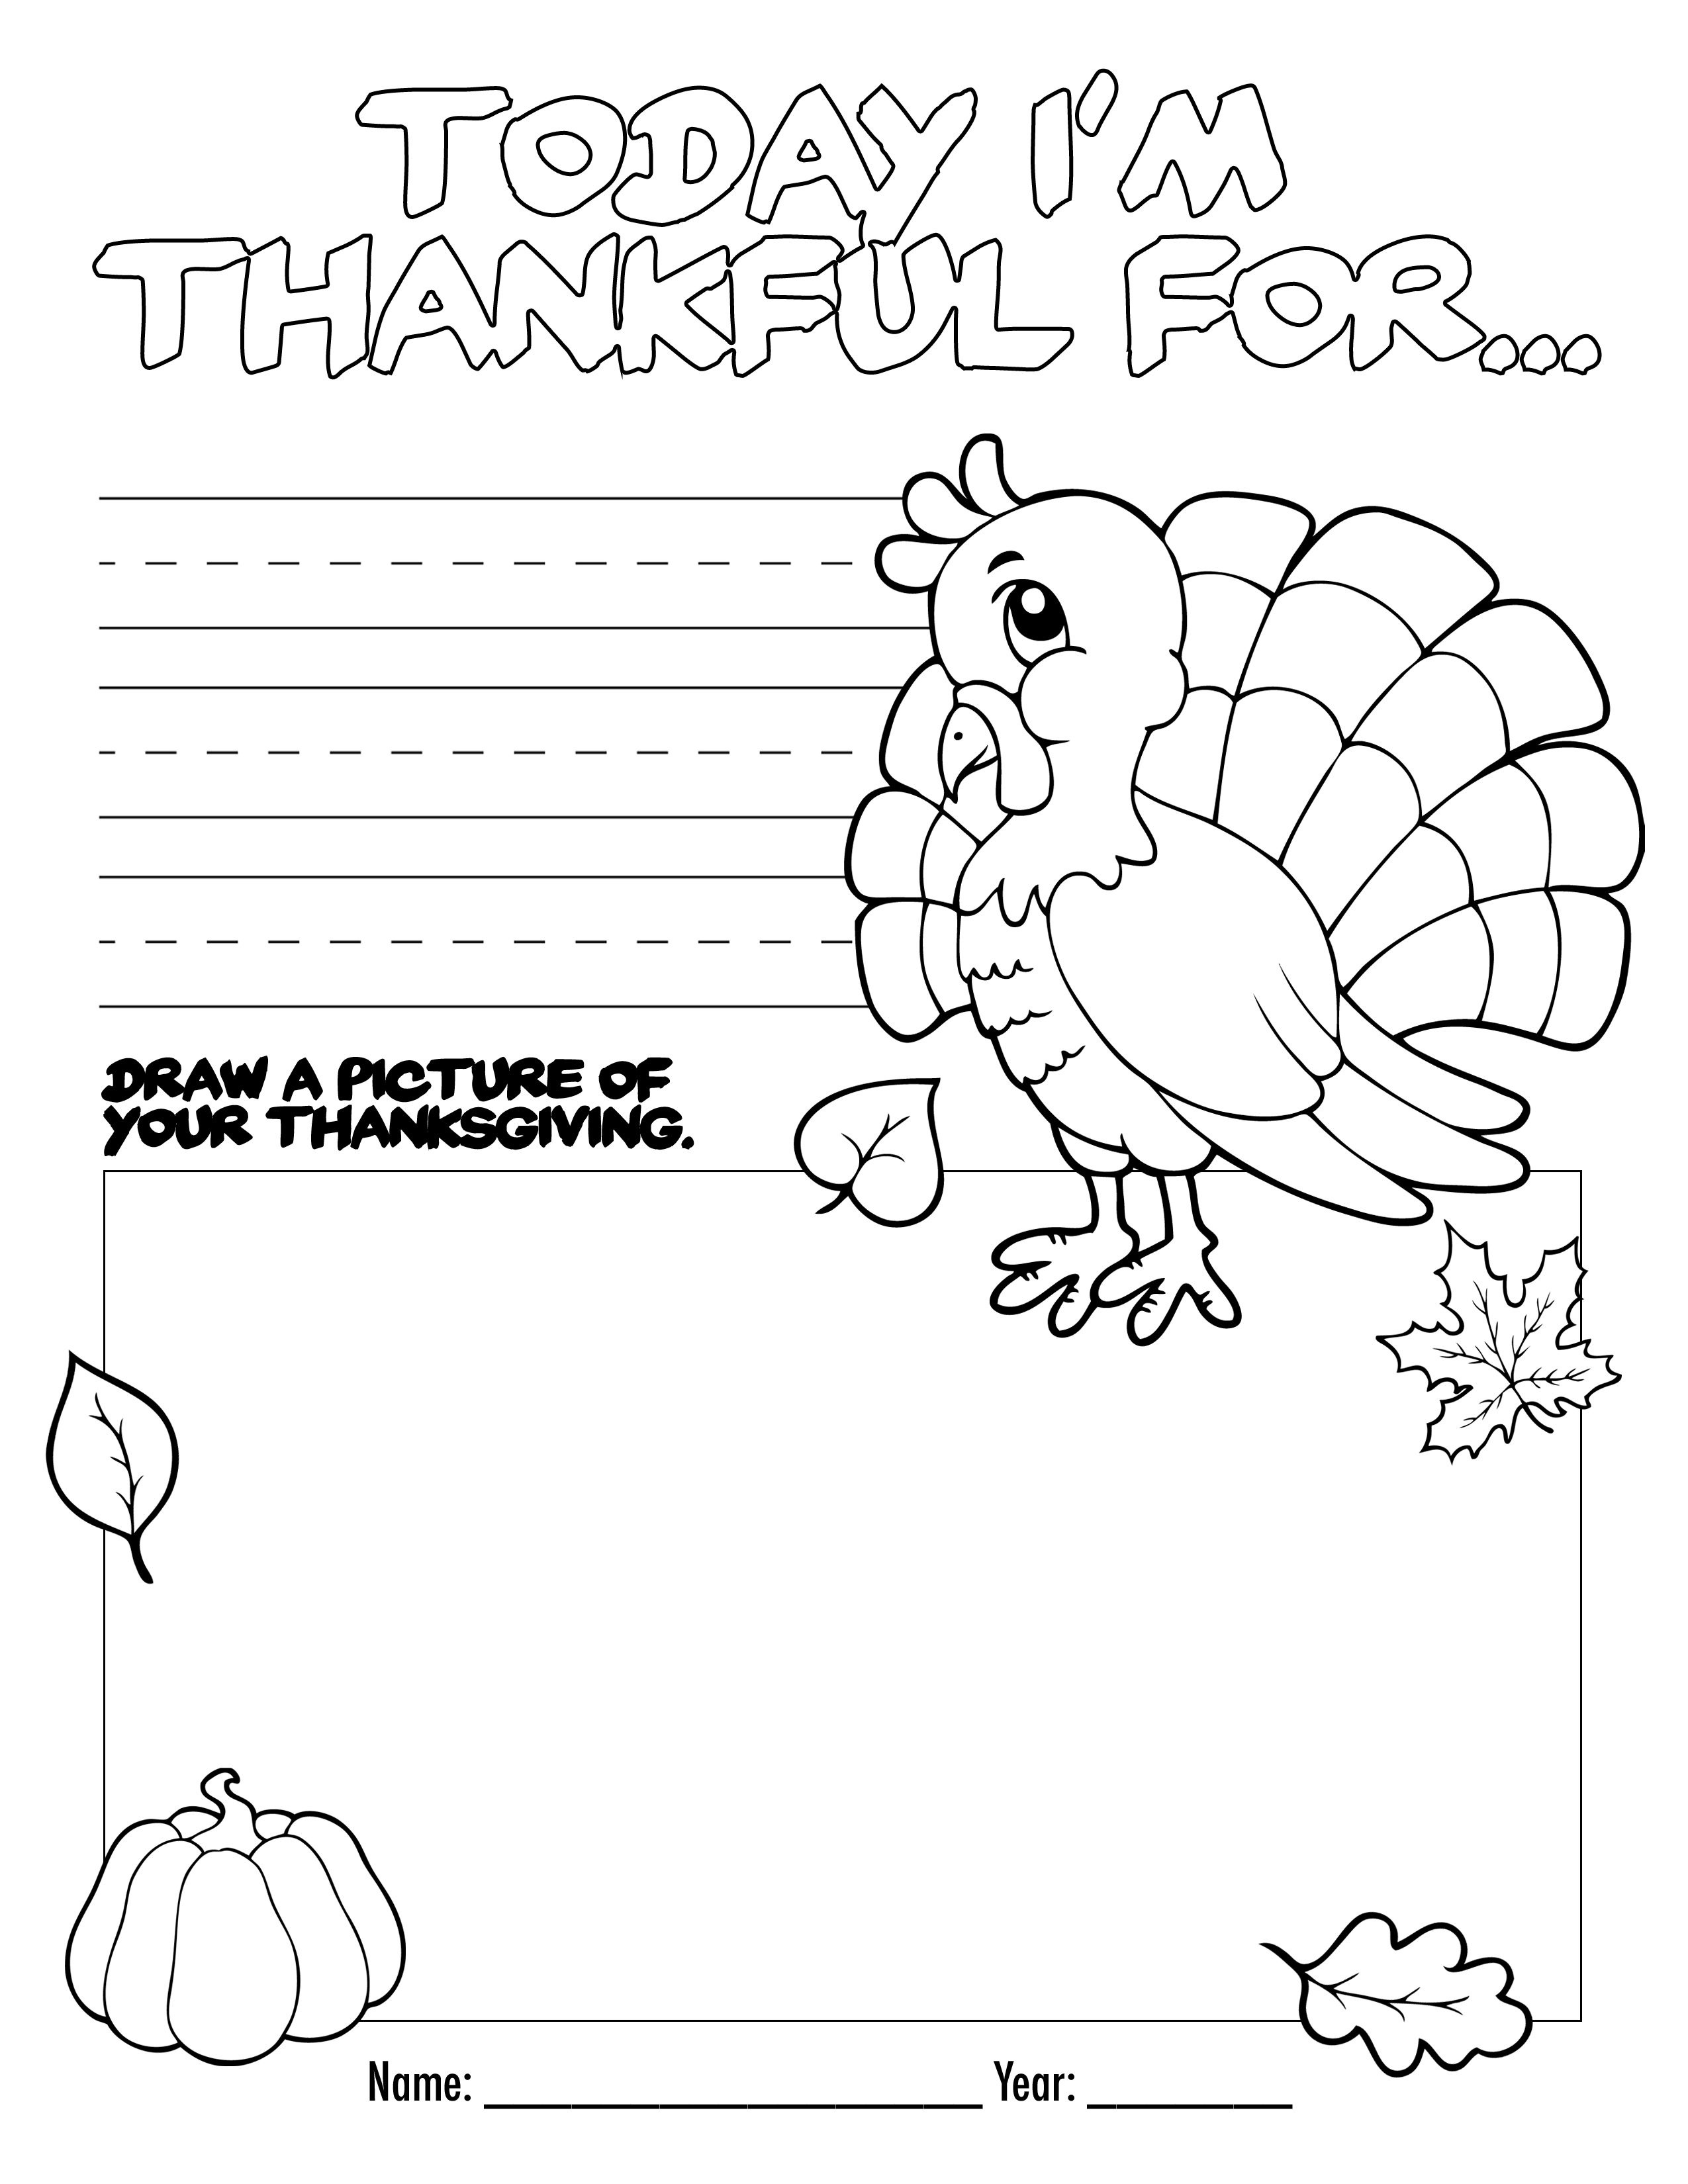 Thanksgiving Coloring Book Free Printable For The Kids! | Bloggers - Free Printable Thanksgiving Activities